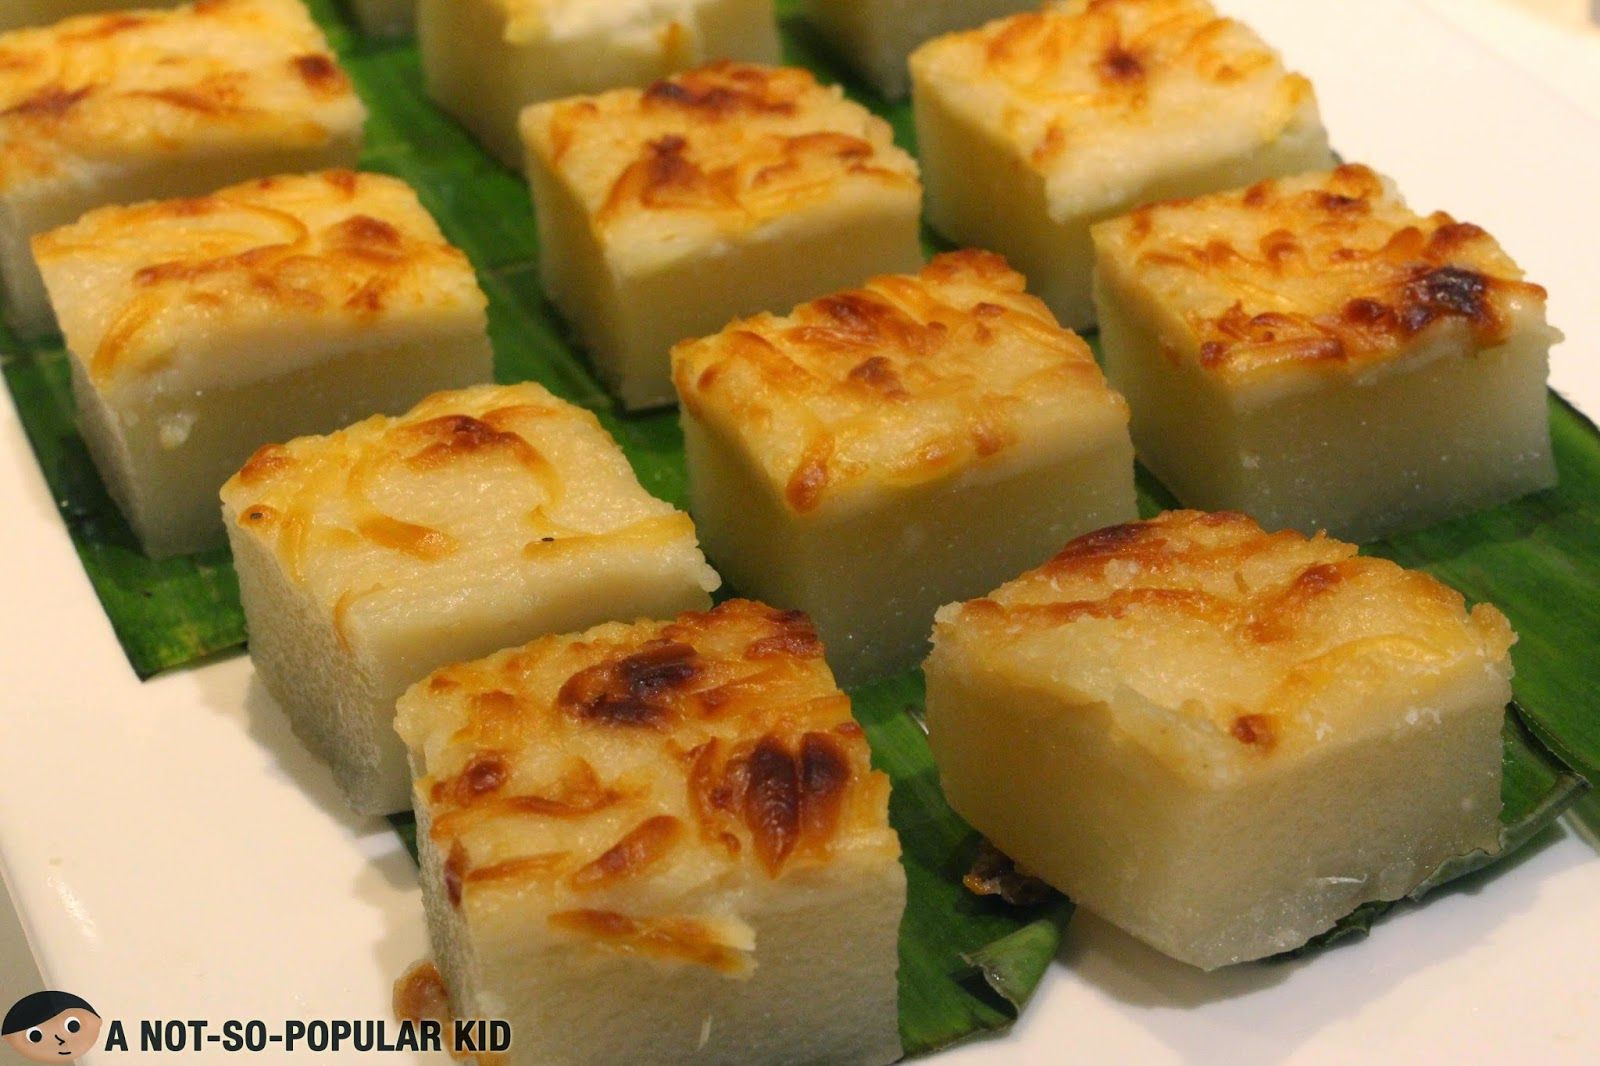 Maja Blanca Filipino Dessert with Cheese